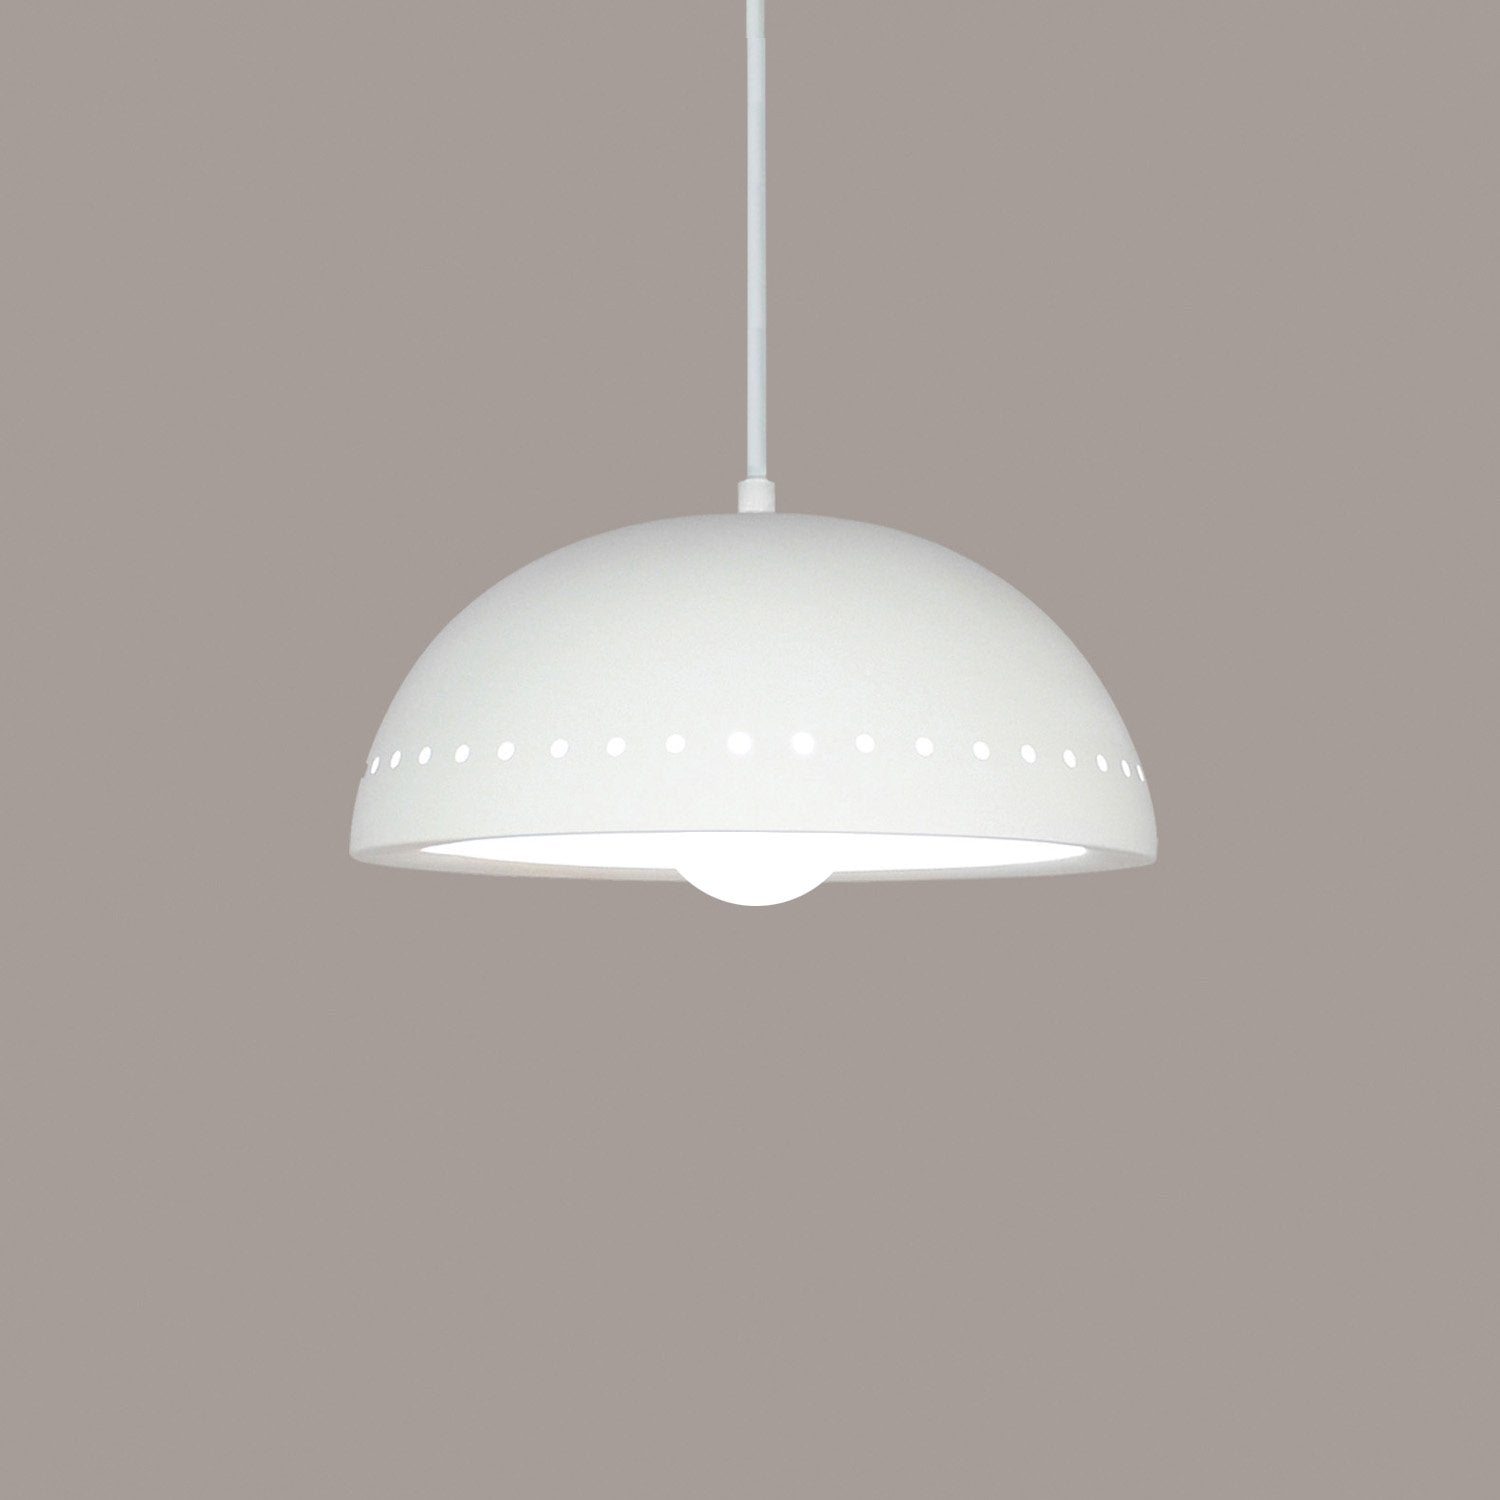 A19 P305-LEDGU24-WC-WCC Islands of Light Collection Cyprus White Crackle Finish Pendant